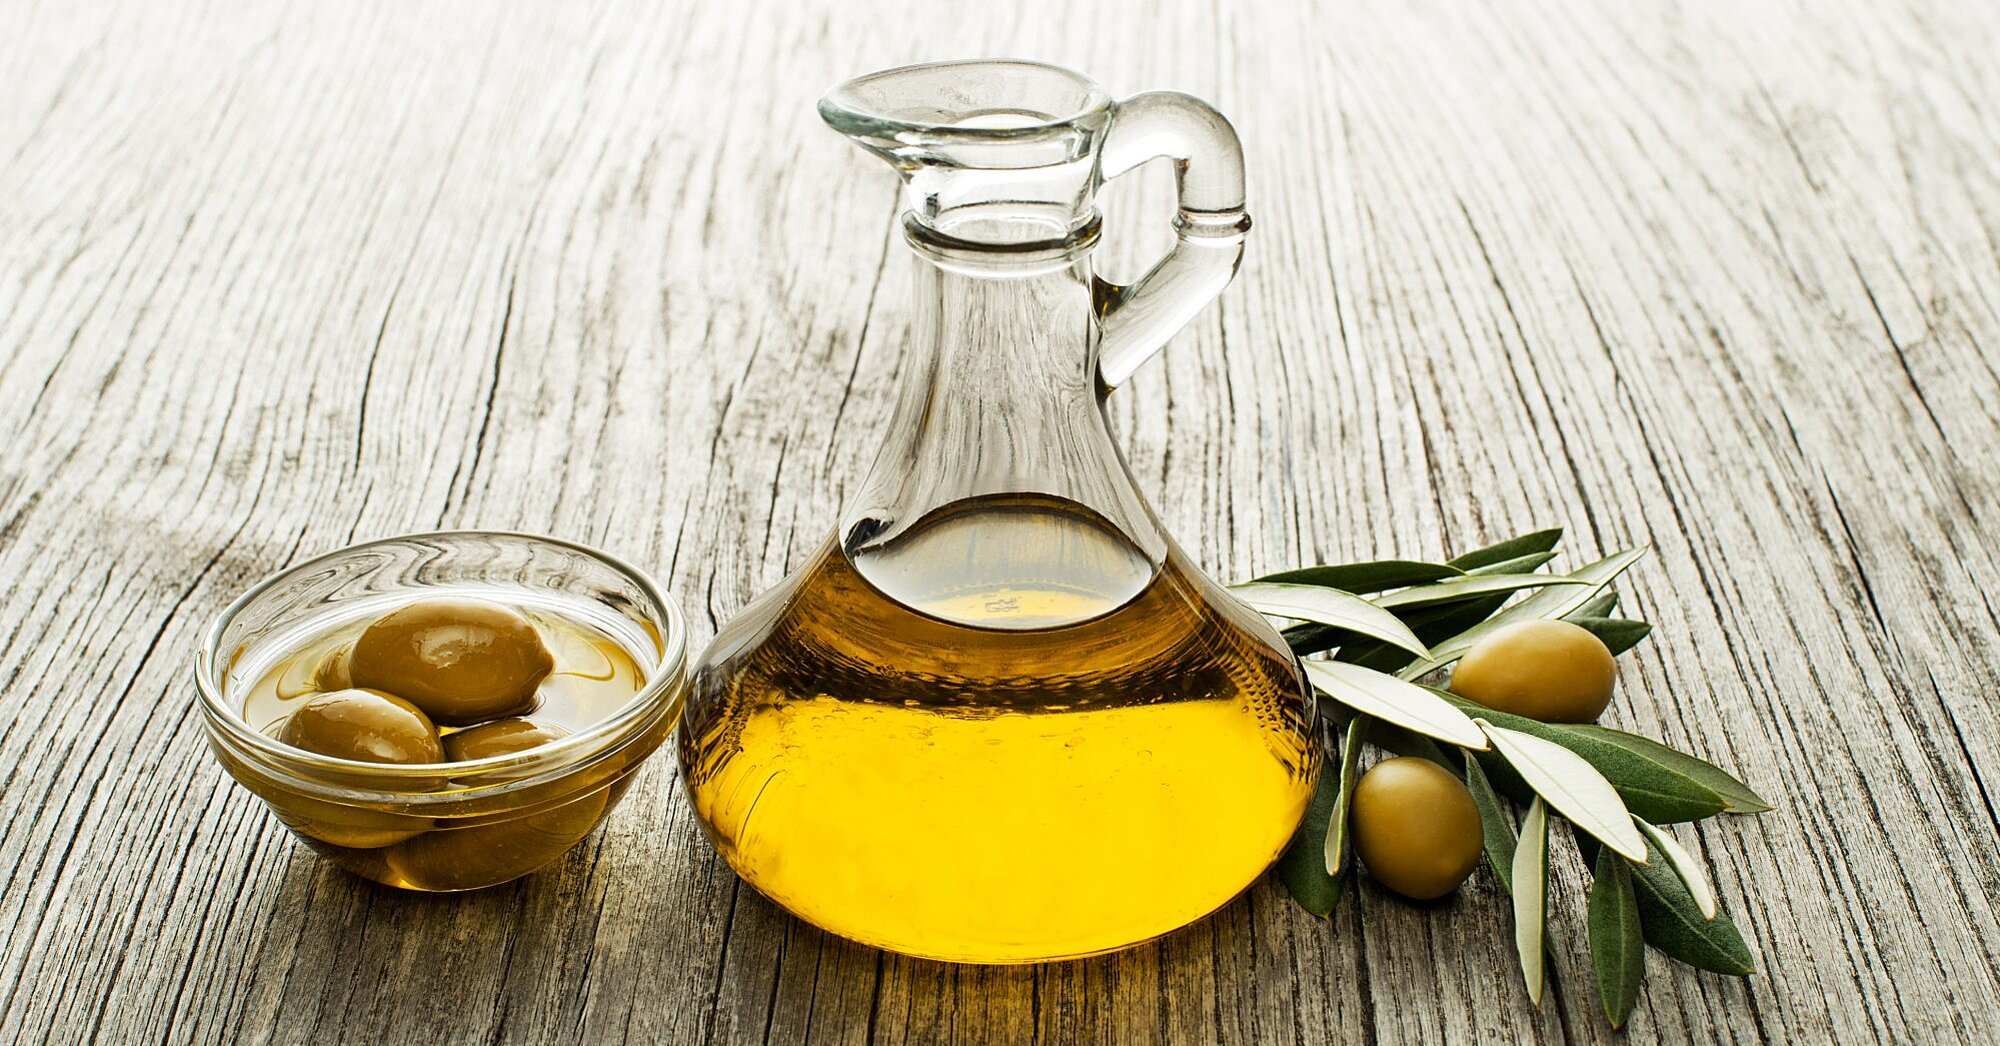 6 Things You Should Always Avoid Doing With Your Olive Oil